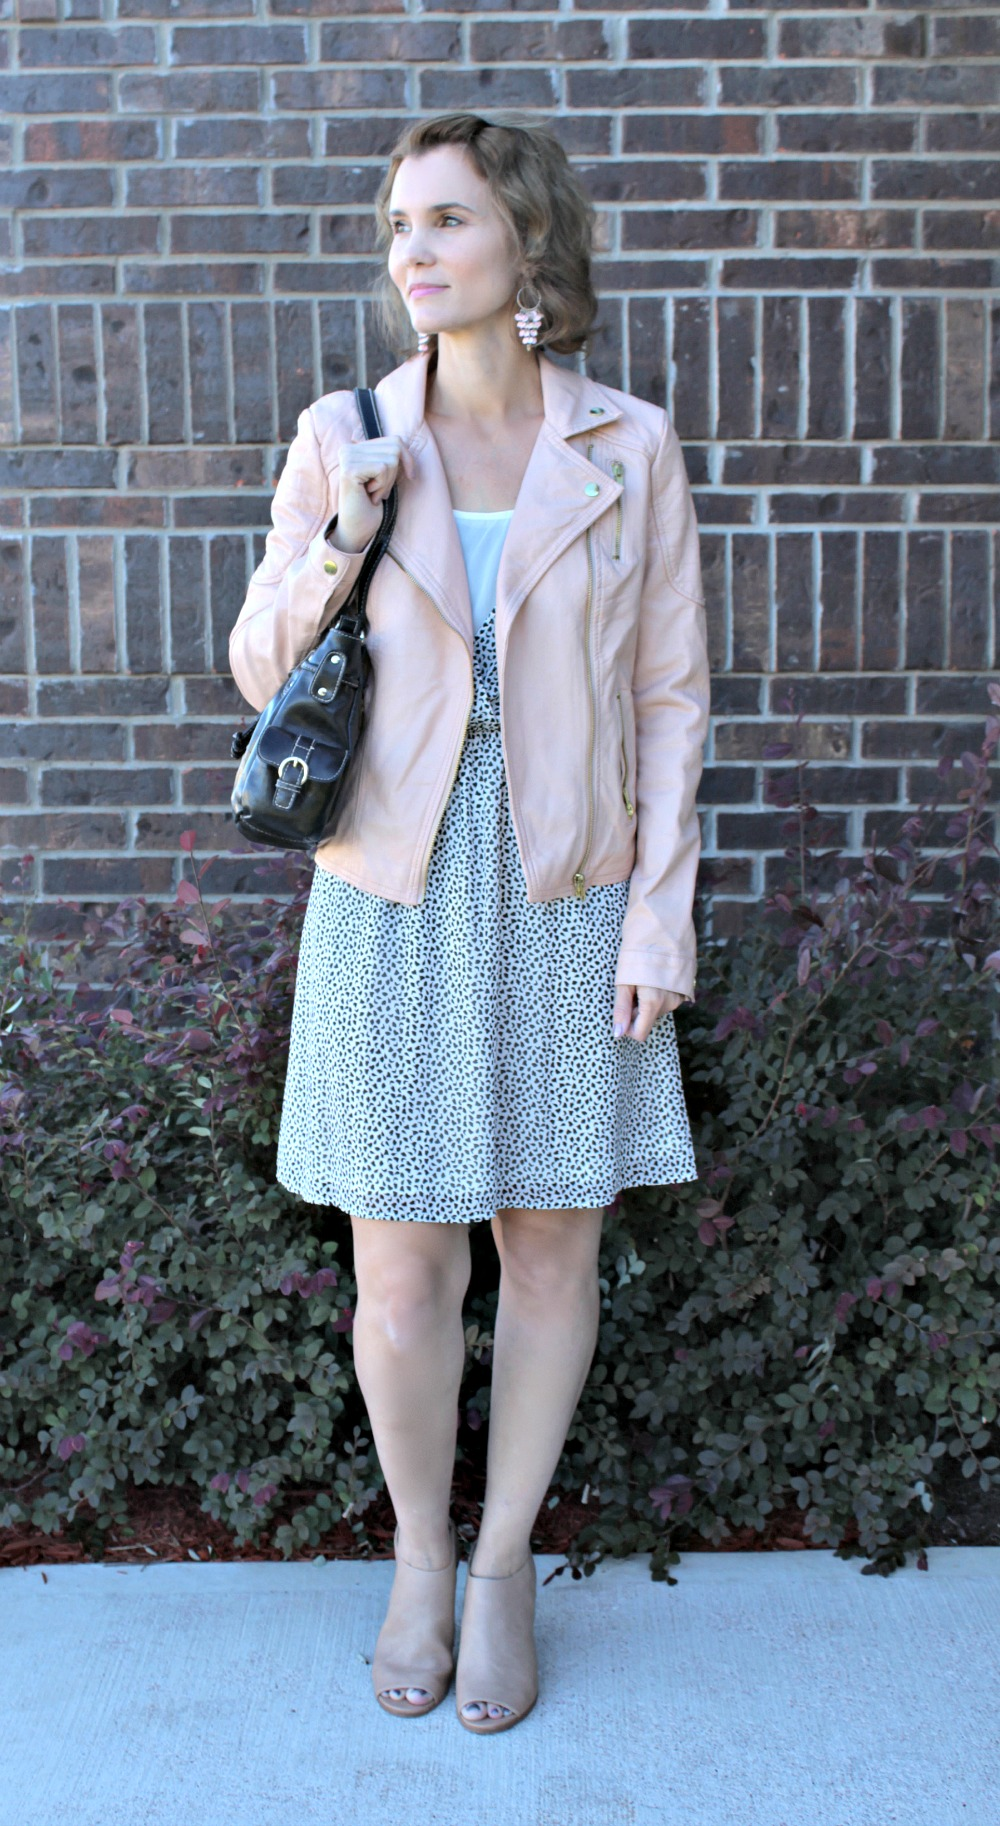 Cute Outfit Ideas Featuring a Pink Leather Jacket